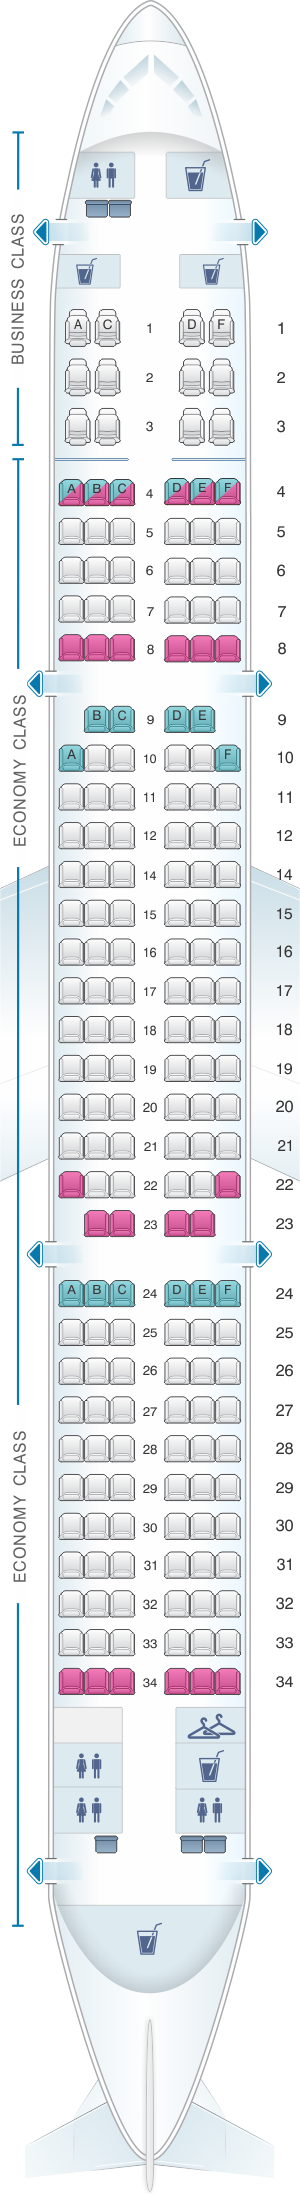 Seat Map Turkish Airlines Airbus A321 200.